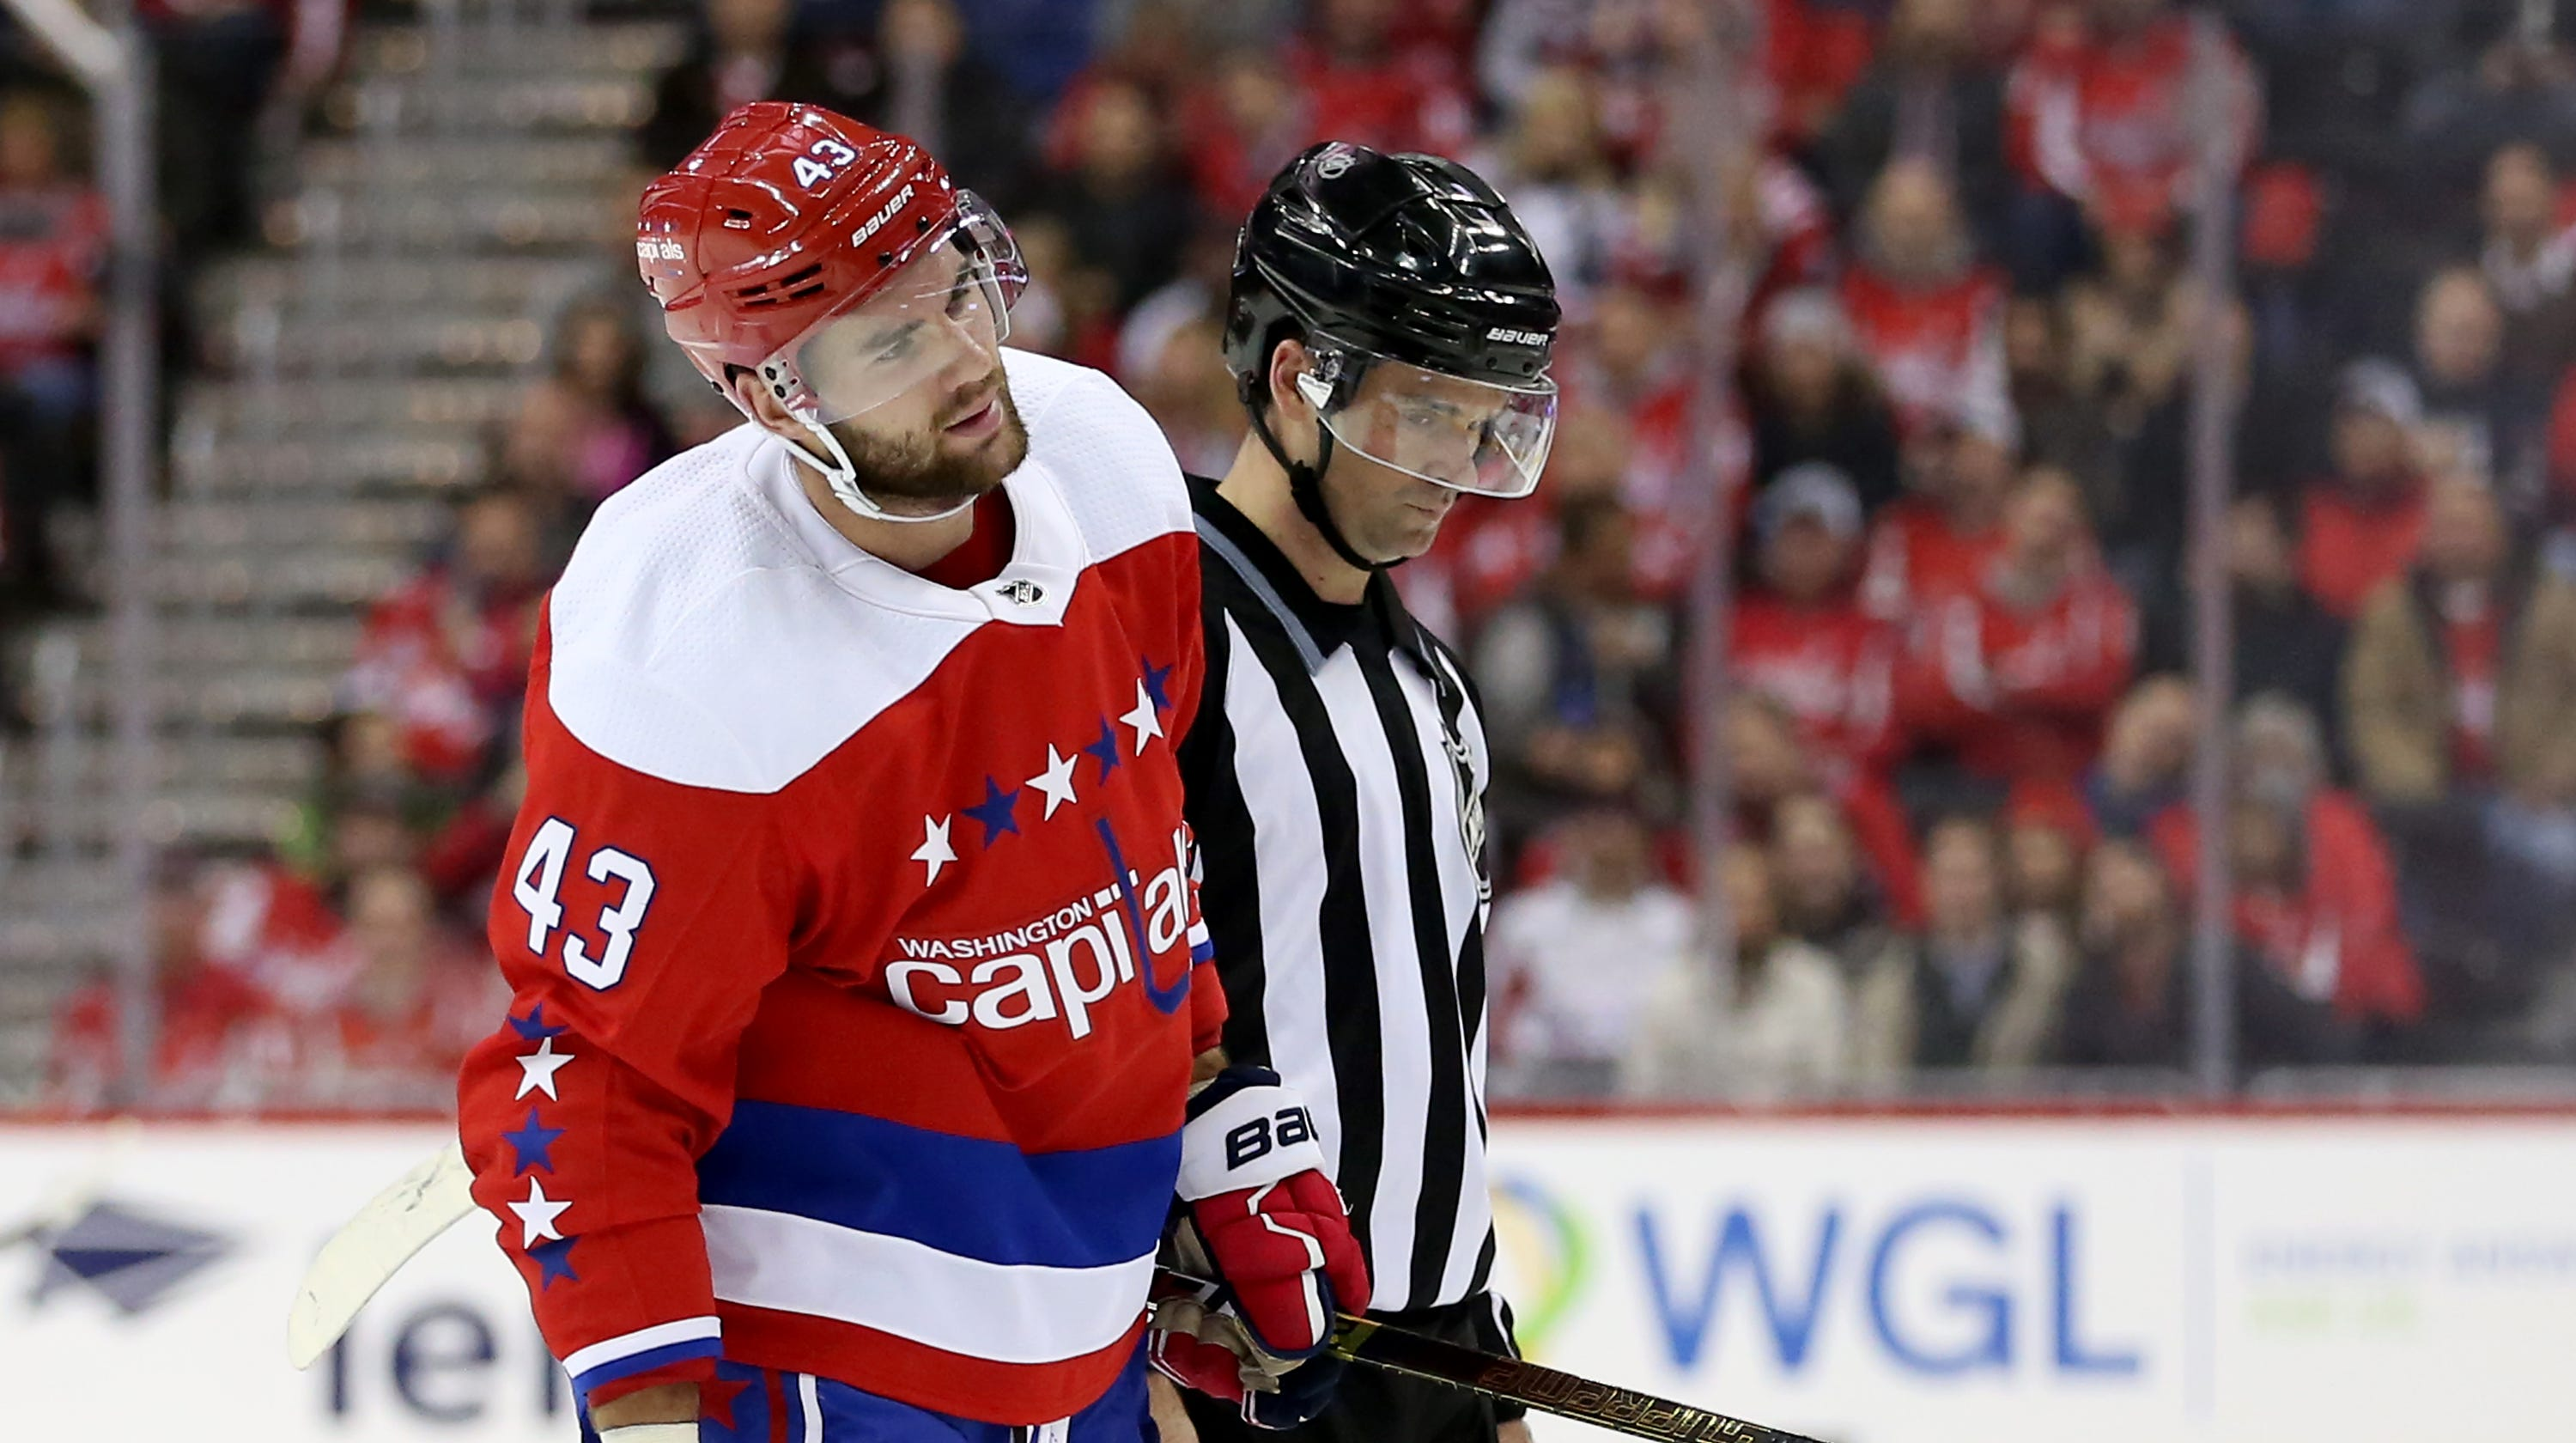 Capitals Tom Wilson Ejected In Ninth Game Back From Suspension